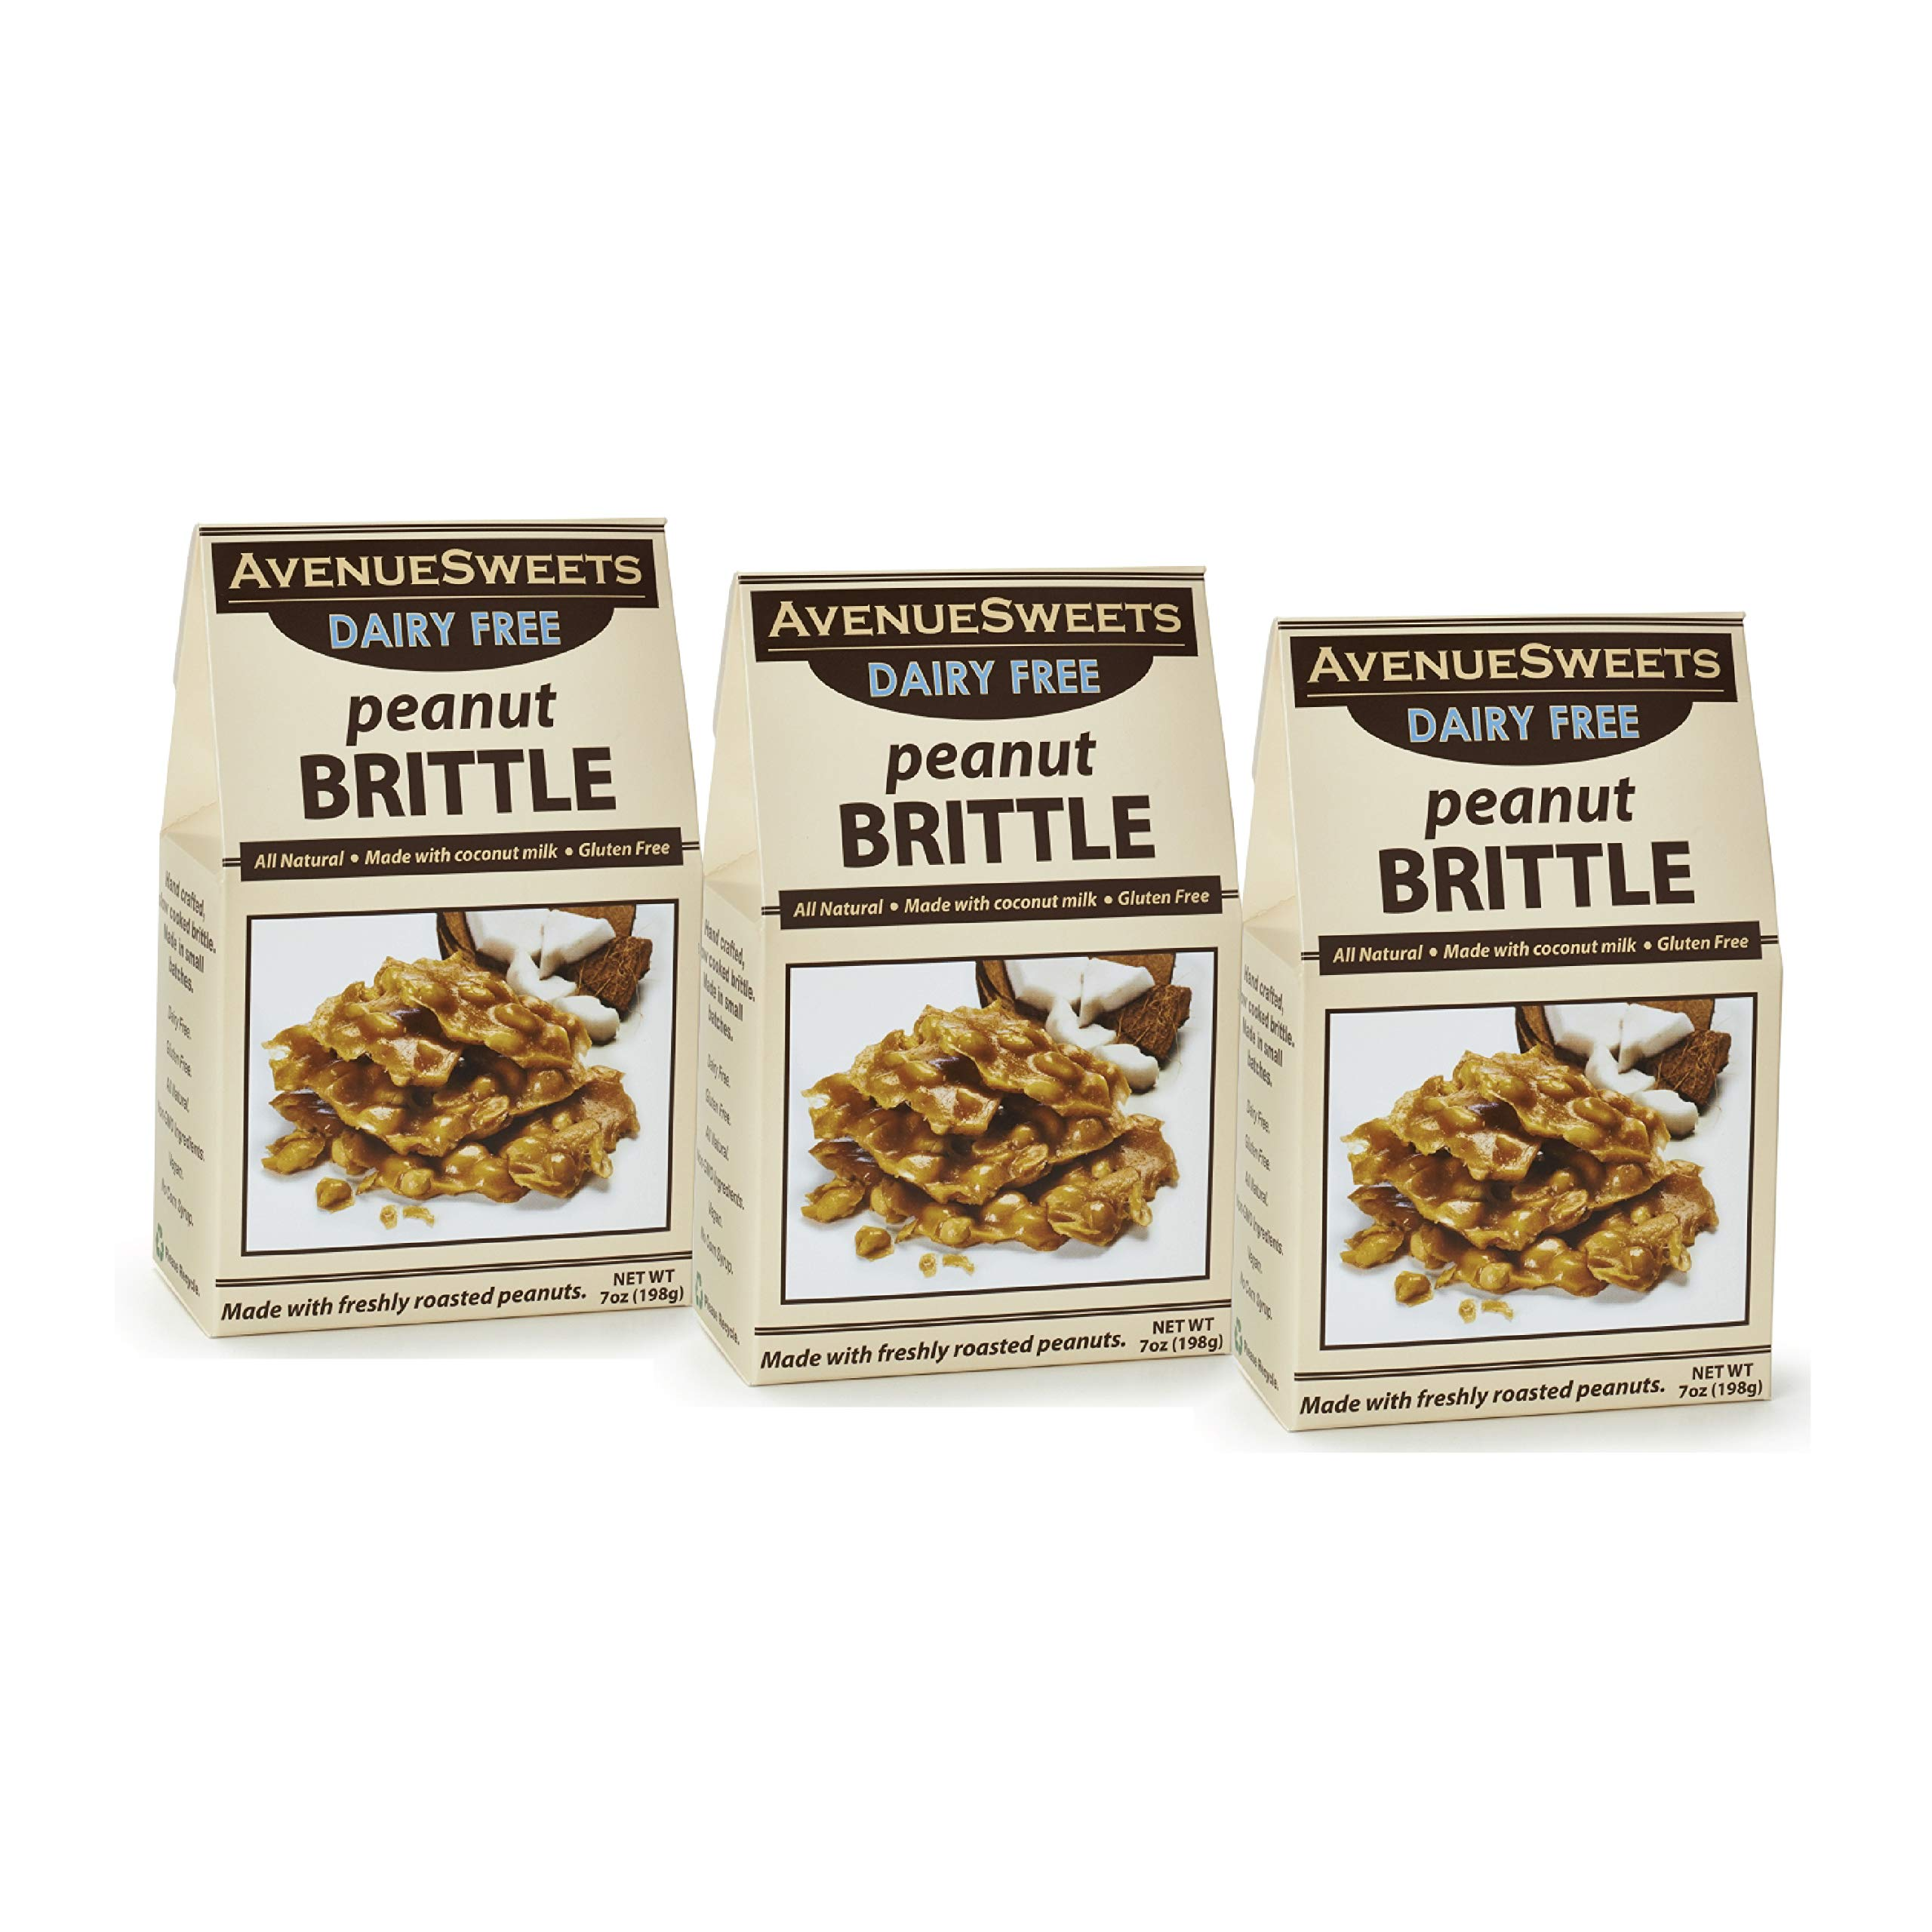 AvenueSweets - Handcrafted Old Fashioned Dairy Free Vegan Nut Brittle - 3 x 7 oz Boxes - Peanut